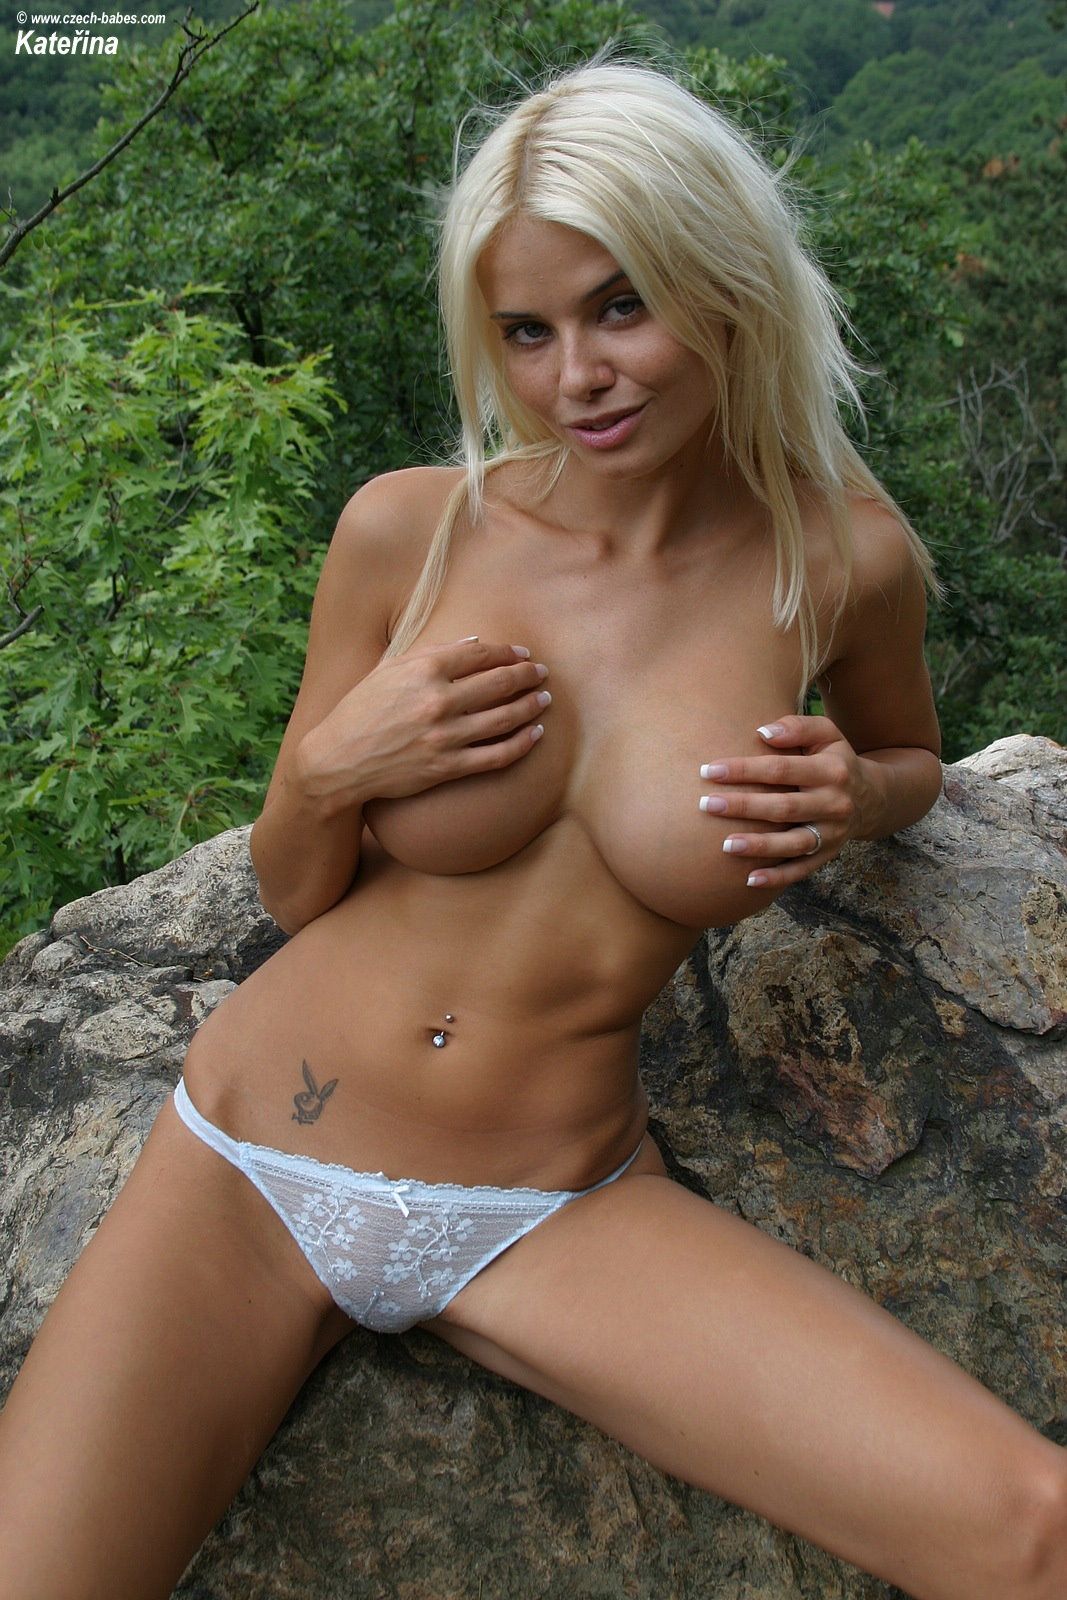 katerina-nude-mountain-lingerie-huge-tits-blonde-12